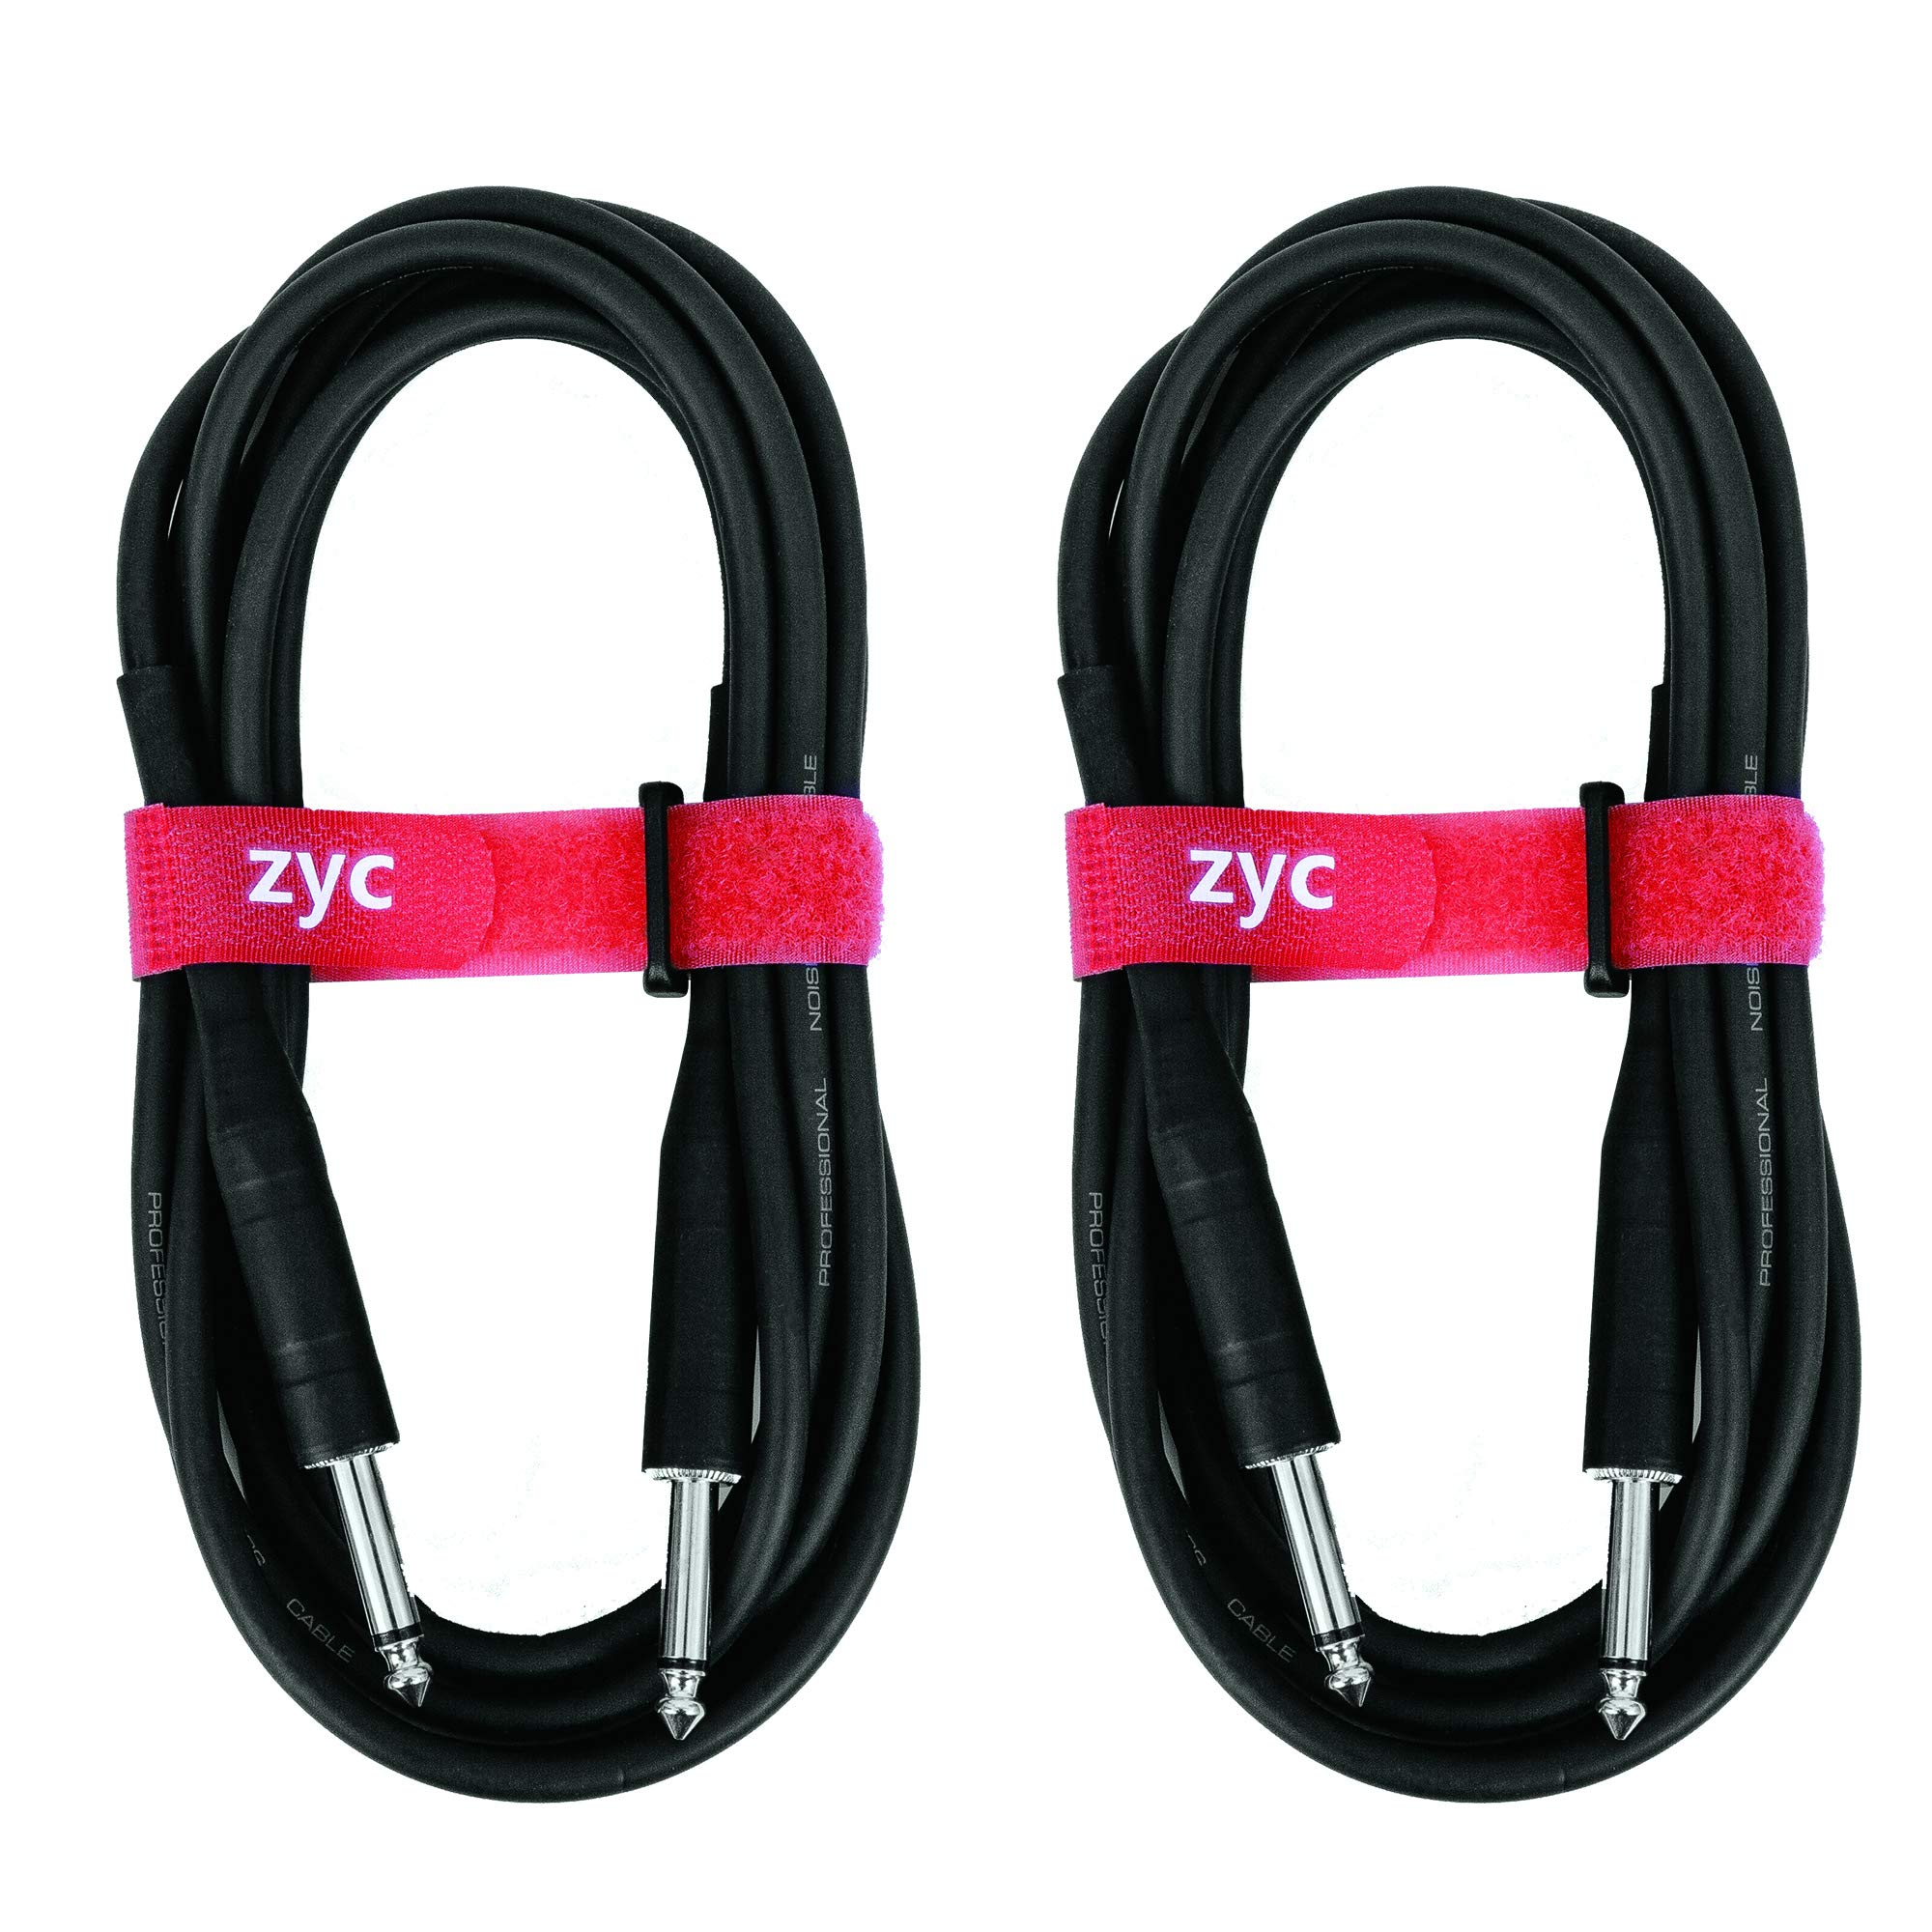 ZYC Guitar Cable 10 Feet 1/4 Inch Male to Male Mono PVC Instrument 1 4 Audio Cable Connectors-2 Pack